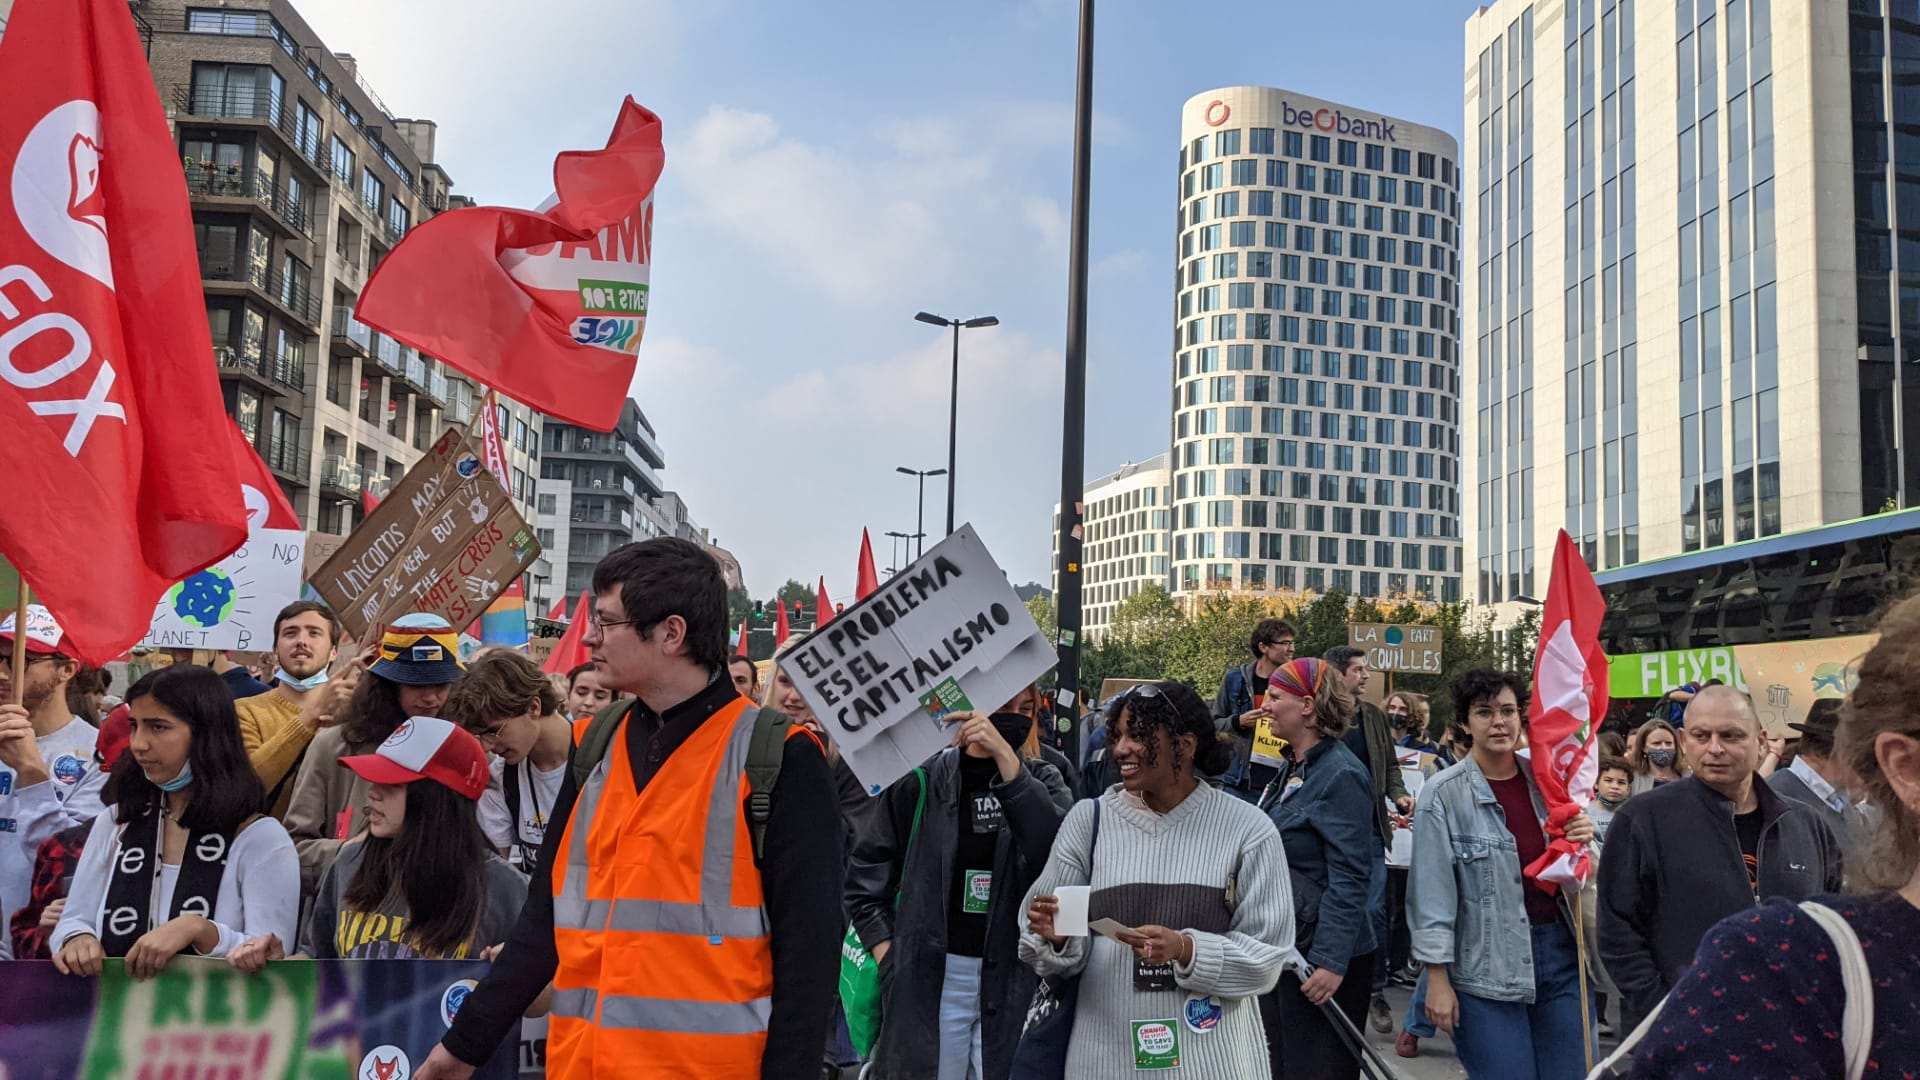 IBON Europe joins around 50,000 in Brussels Climate March to Demand Swift and Tougher Action on Climate Change